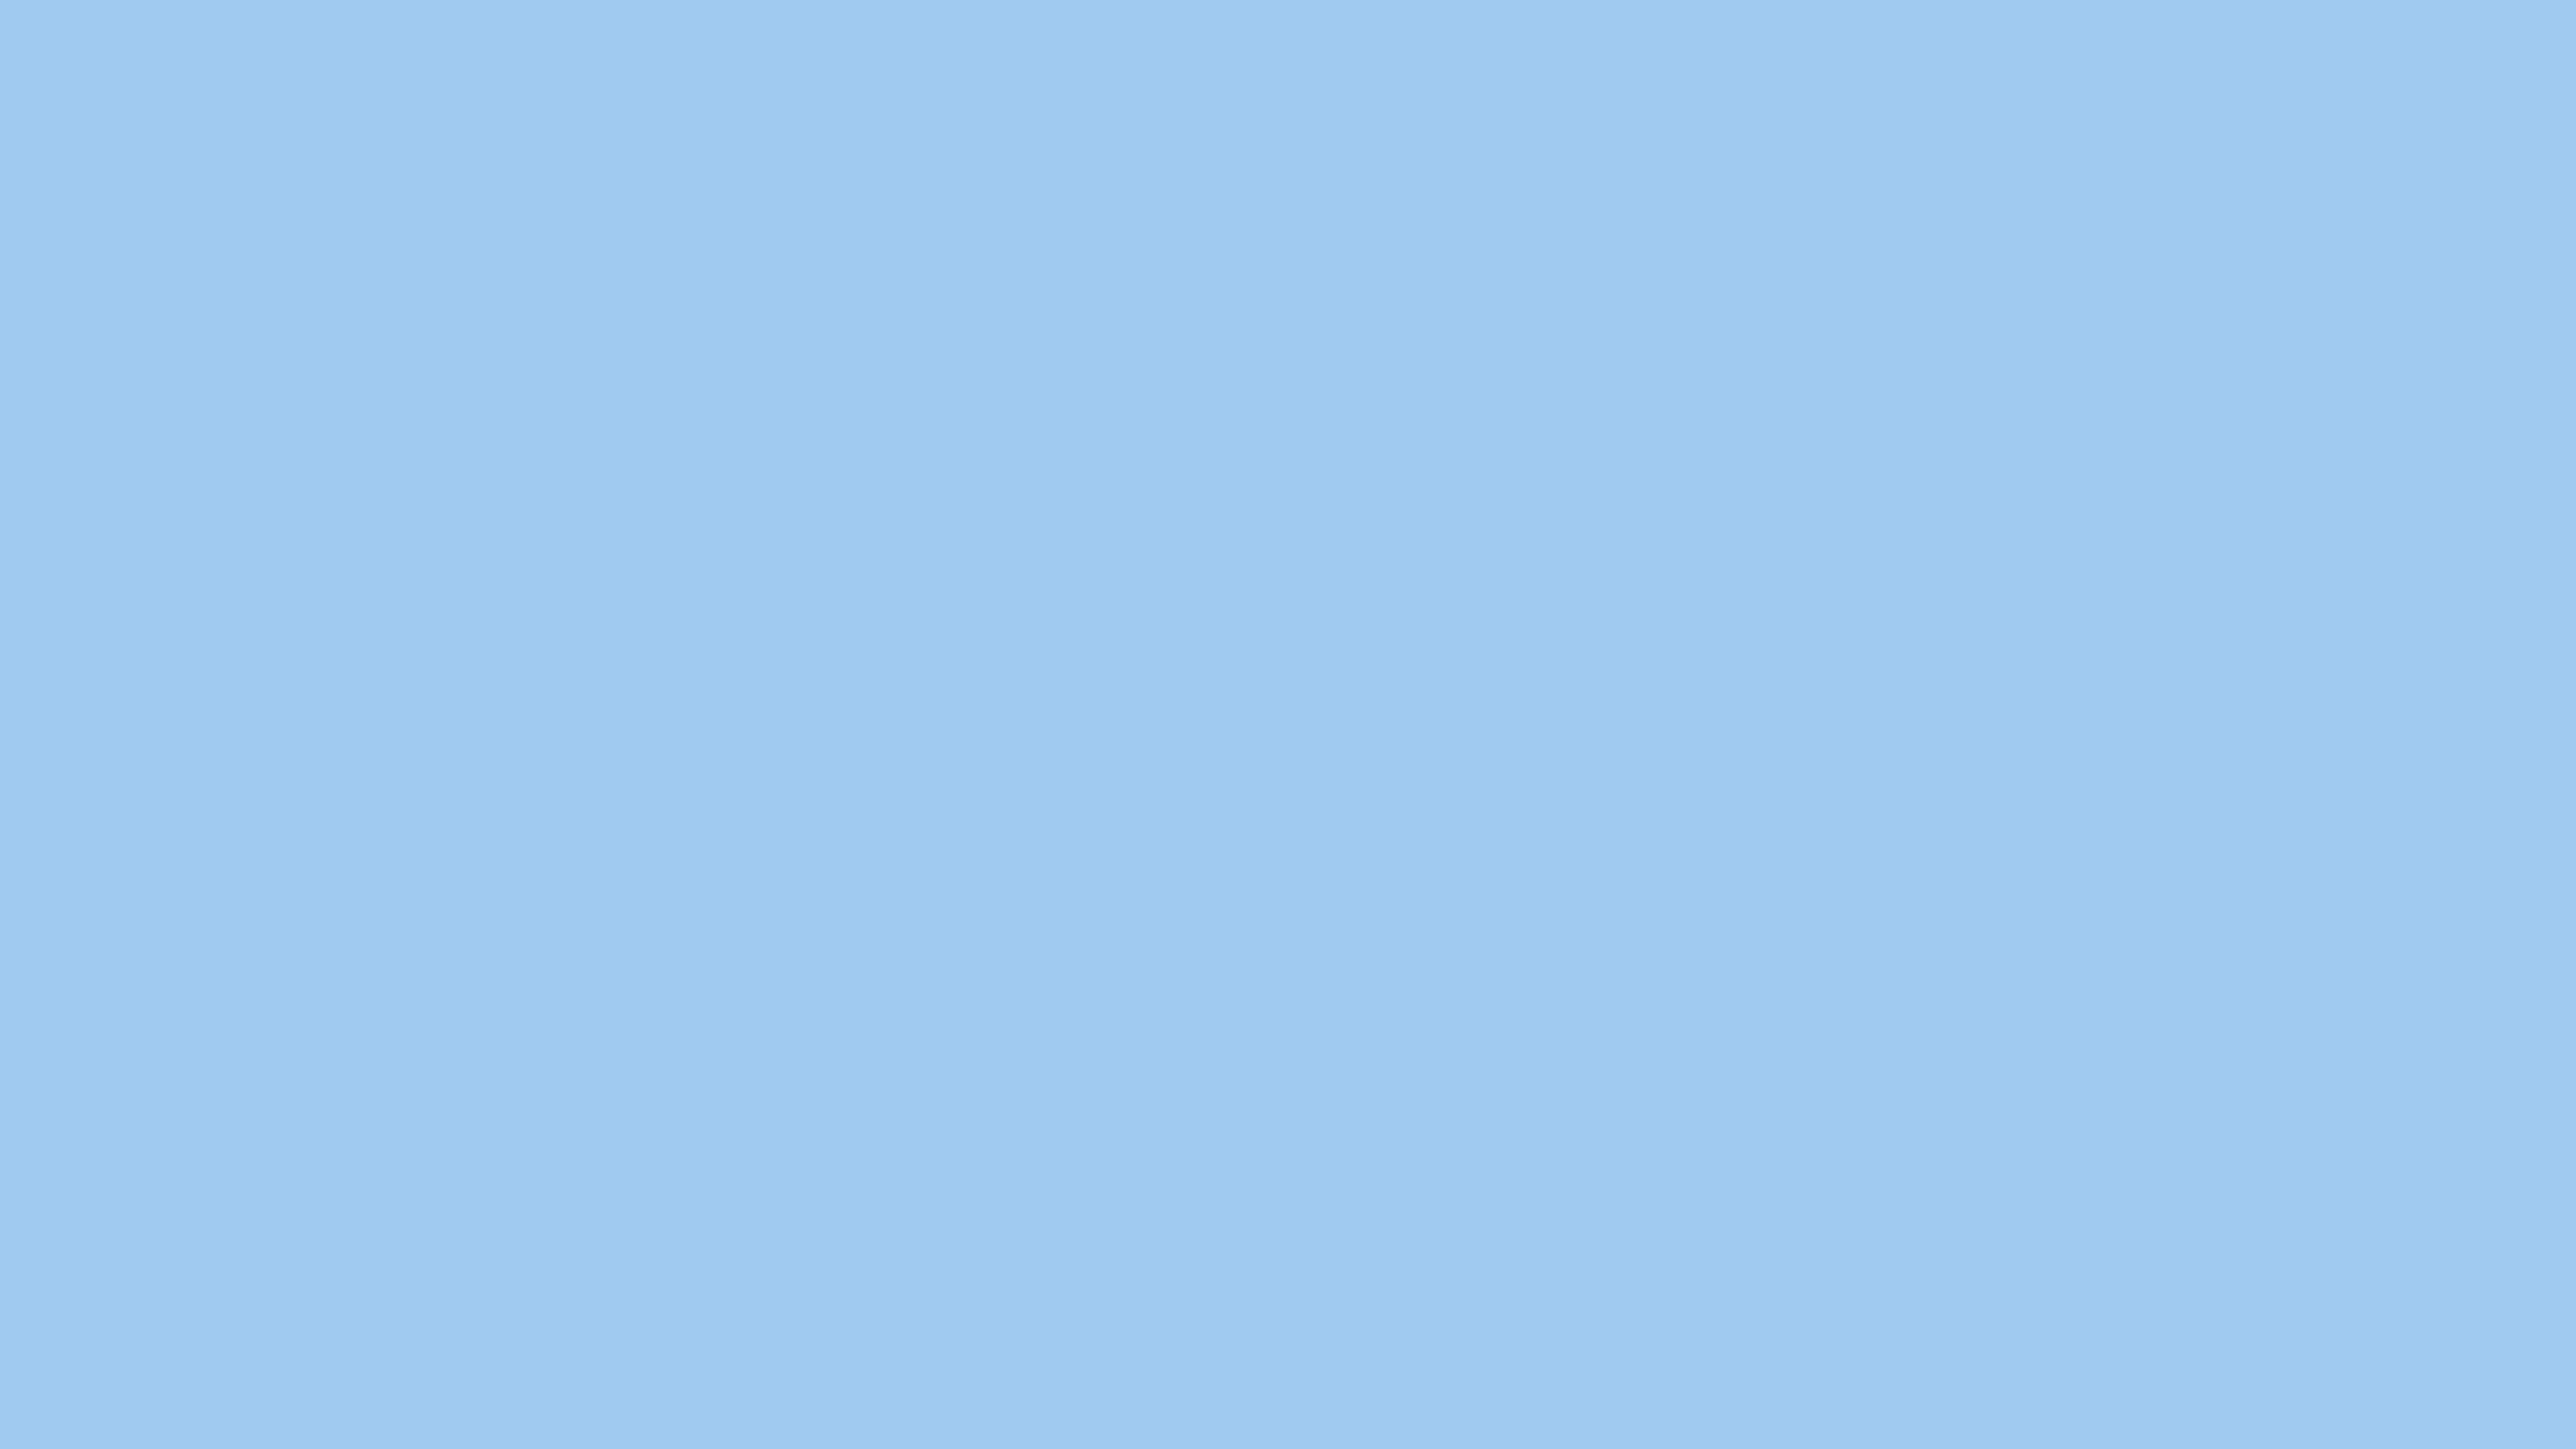 4096x2304 Baby Blue Eyes Solid Color Background